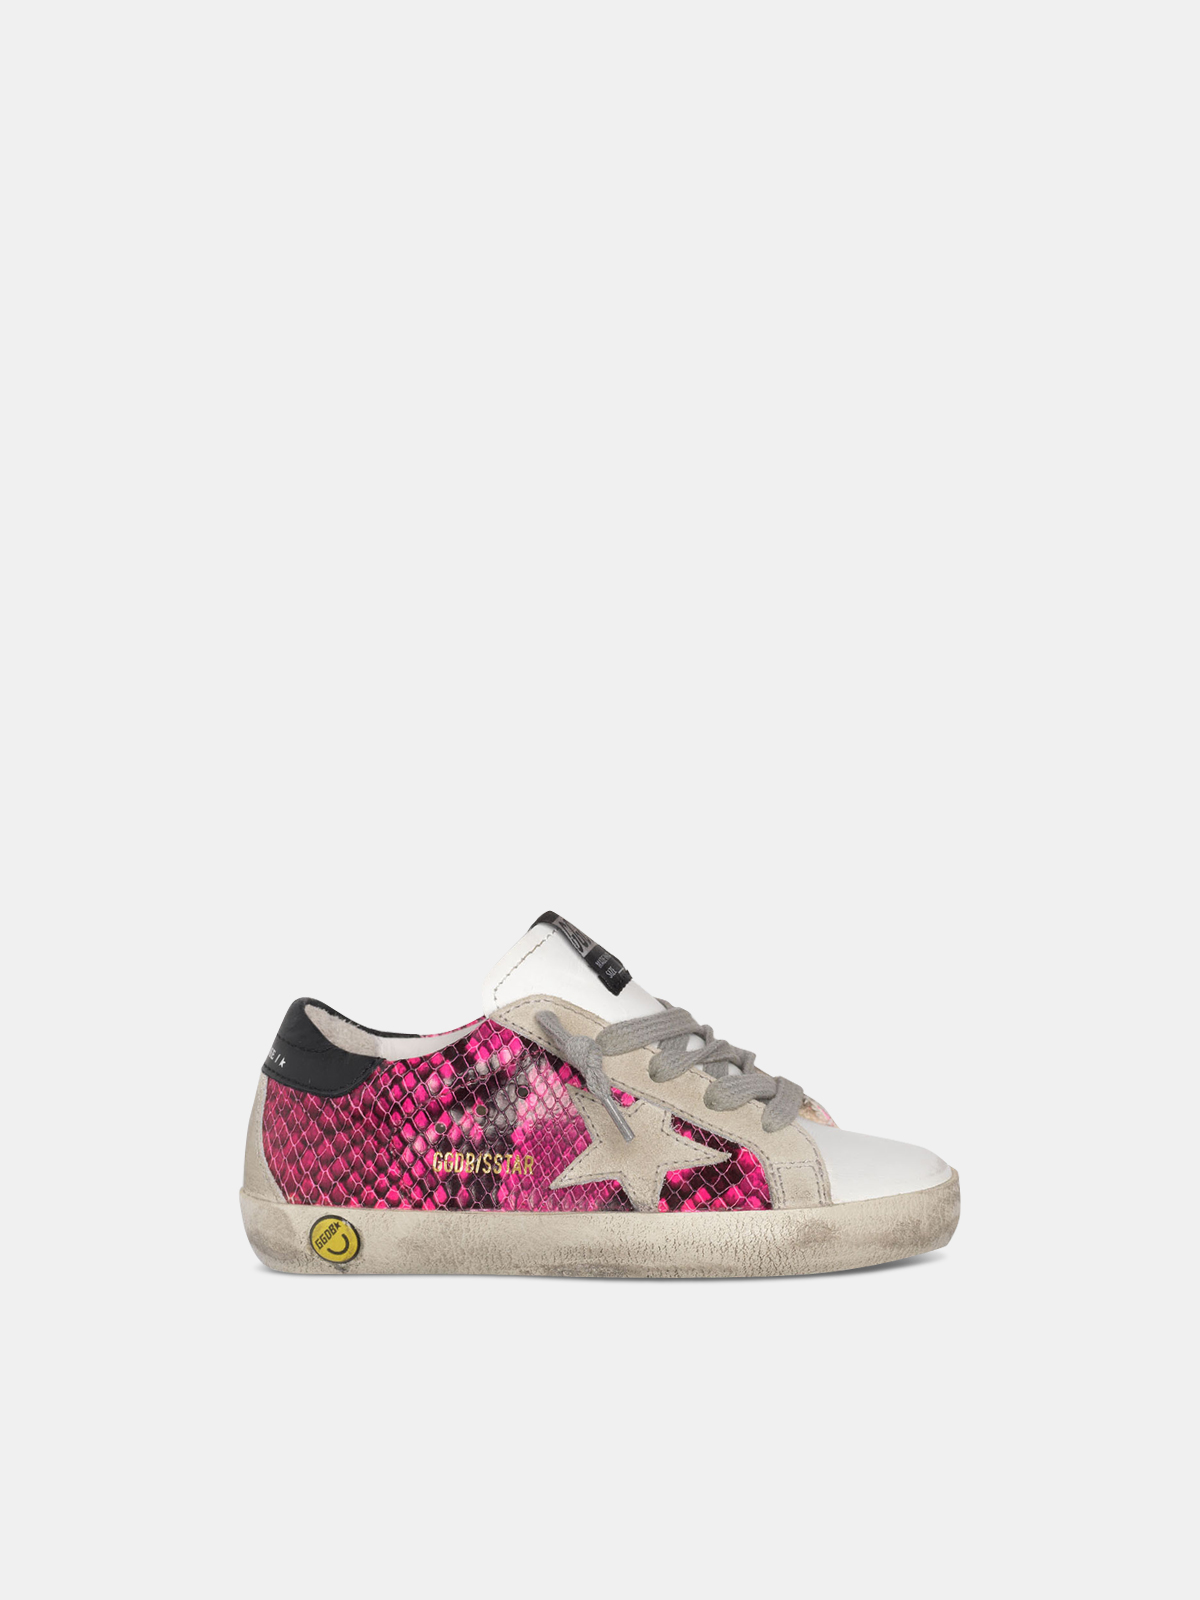 Golden Goose - White and fuchsia snakeskin-print Super-Star sneakers in